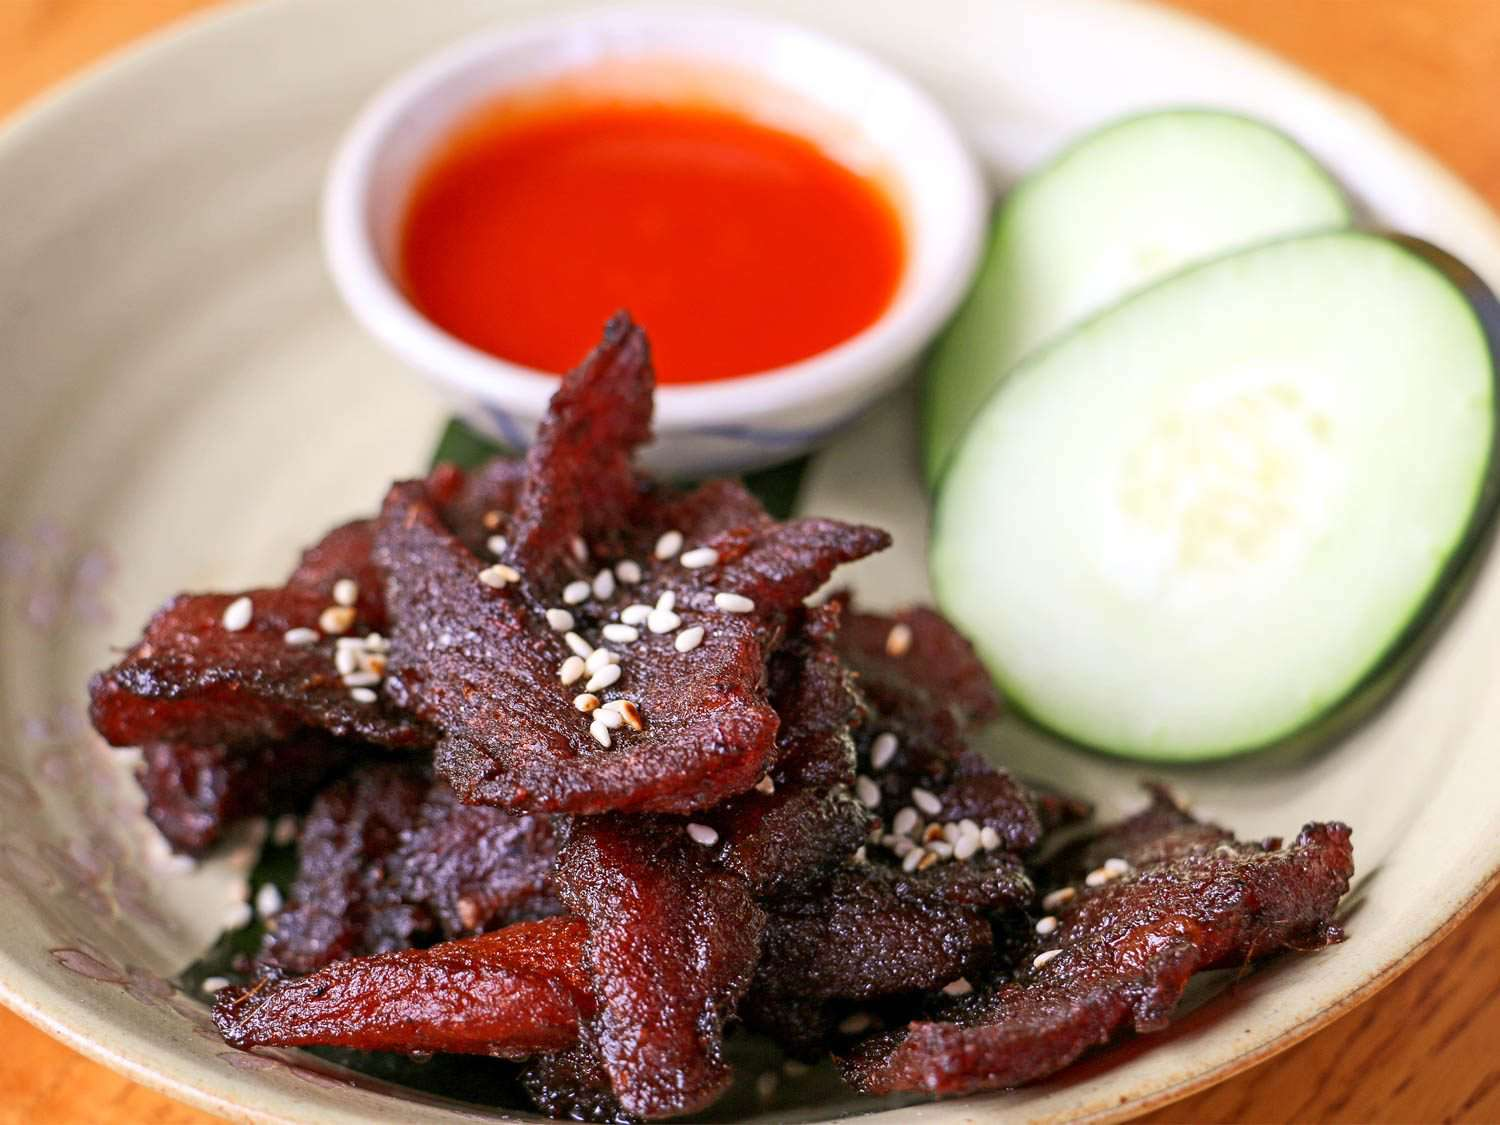 A stoneware plate of dark-red sun-dried pork (muu haeng) next to sliced cucumber and a small bowl of dipping sauce